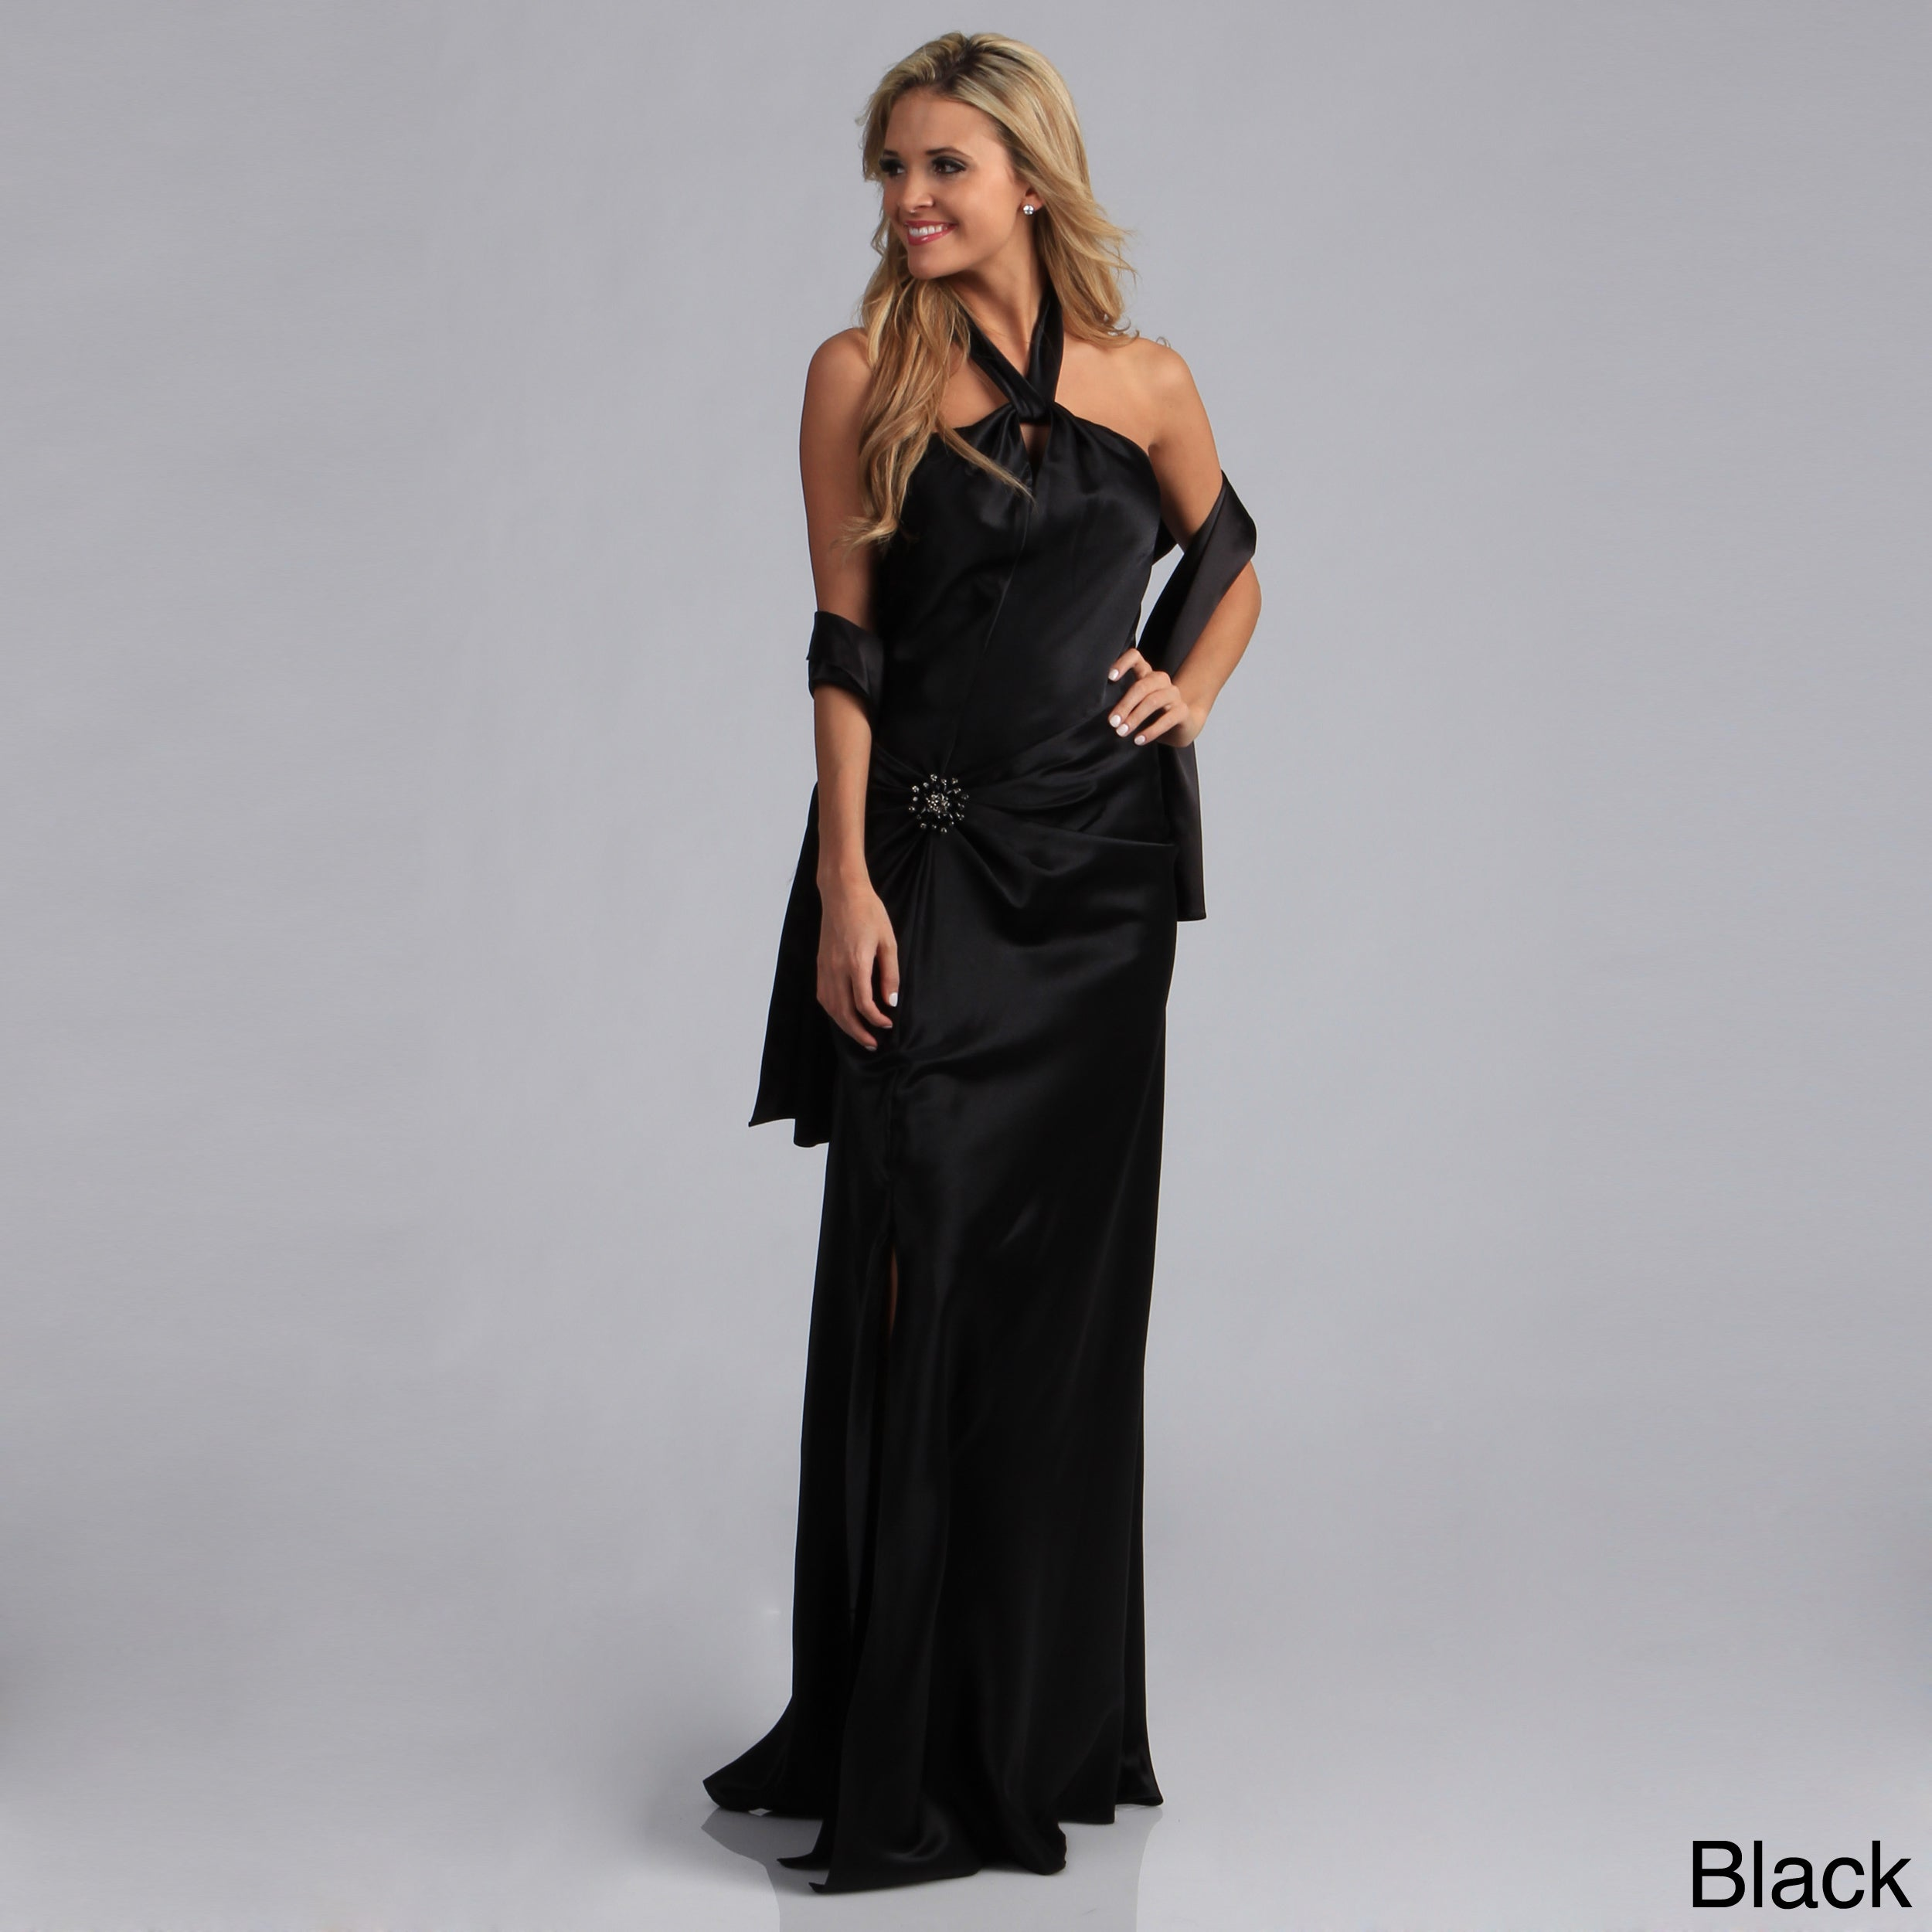 99fcb75f83c4 Shop Aspeed Women's Halter-style Formal Dress - Free Shipping Today -  Overstock - 3827297